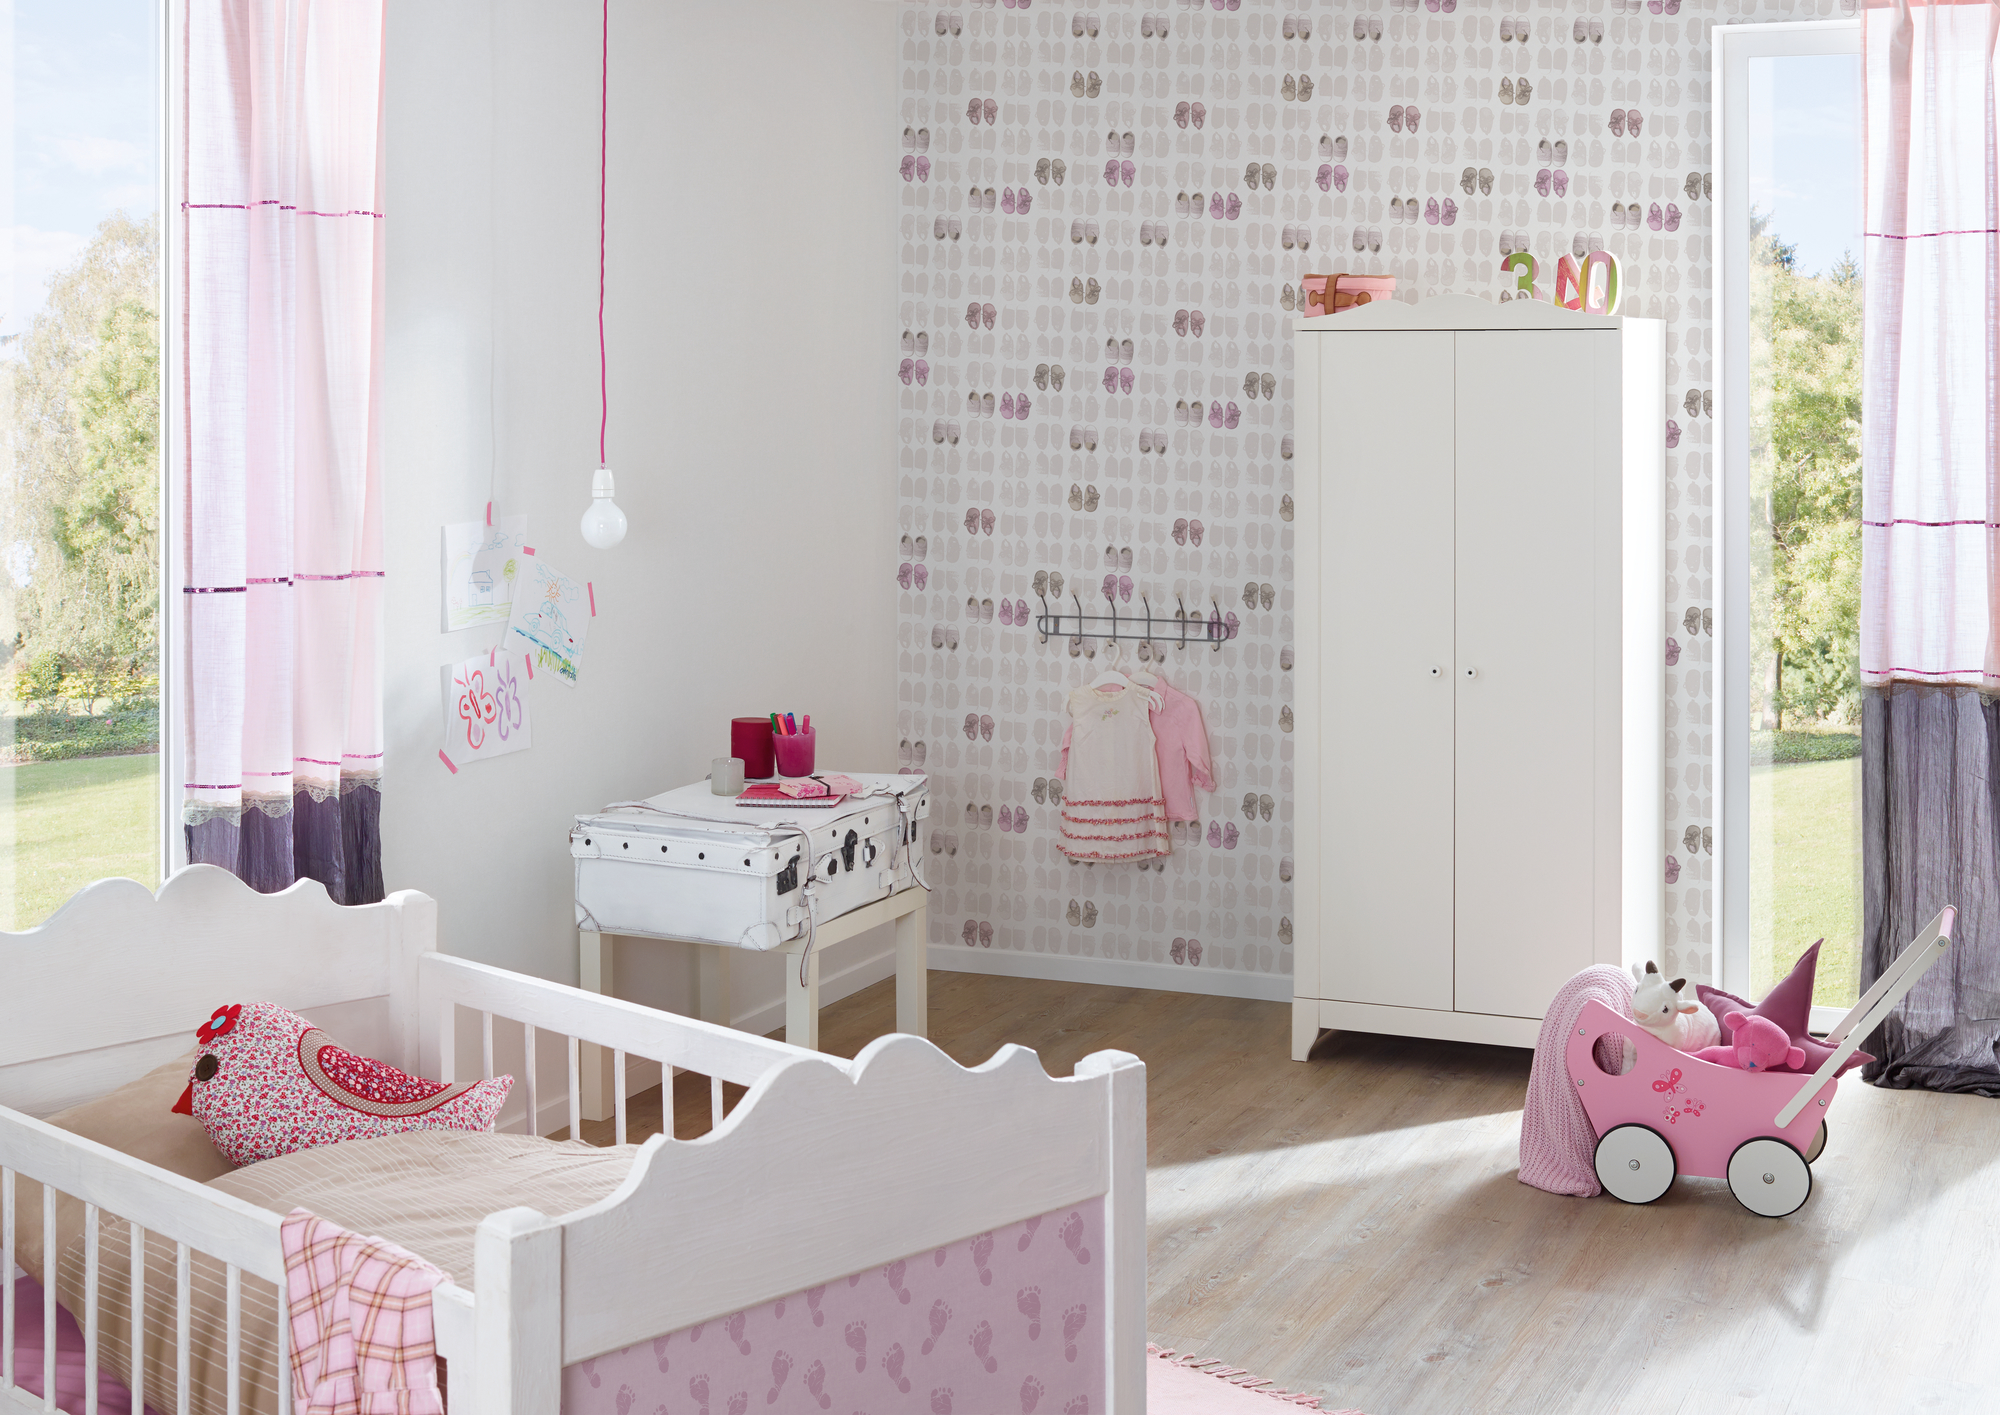 Streifentapete Kinderzimmer Little Stars - Kindertapeten Von As Creation | Joratrend Tapetenshop